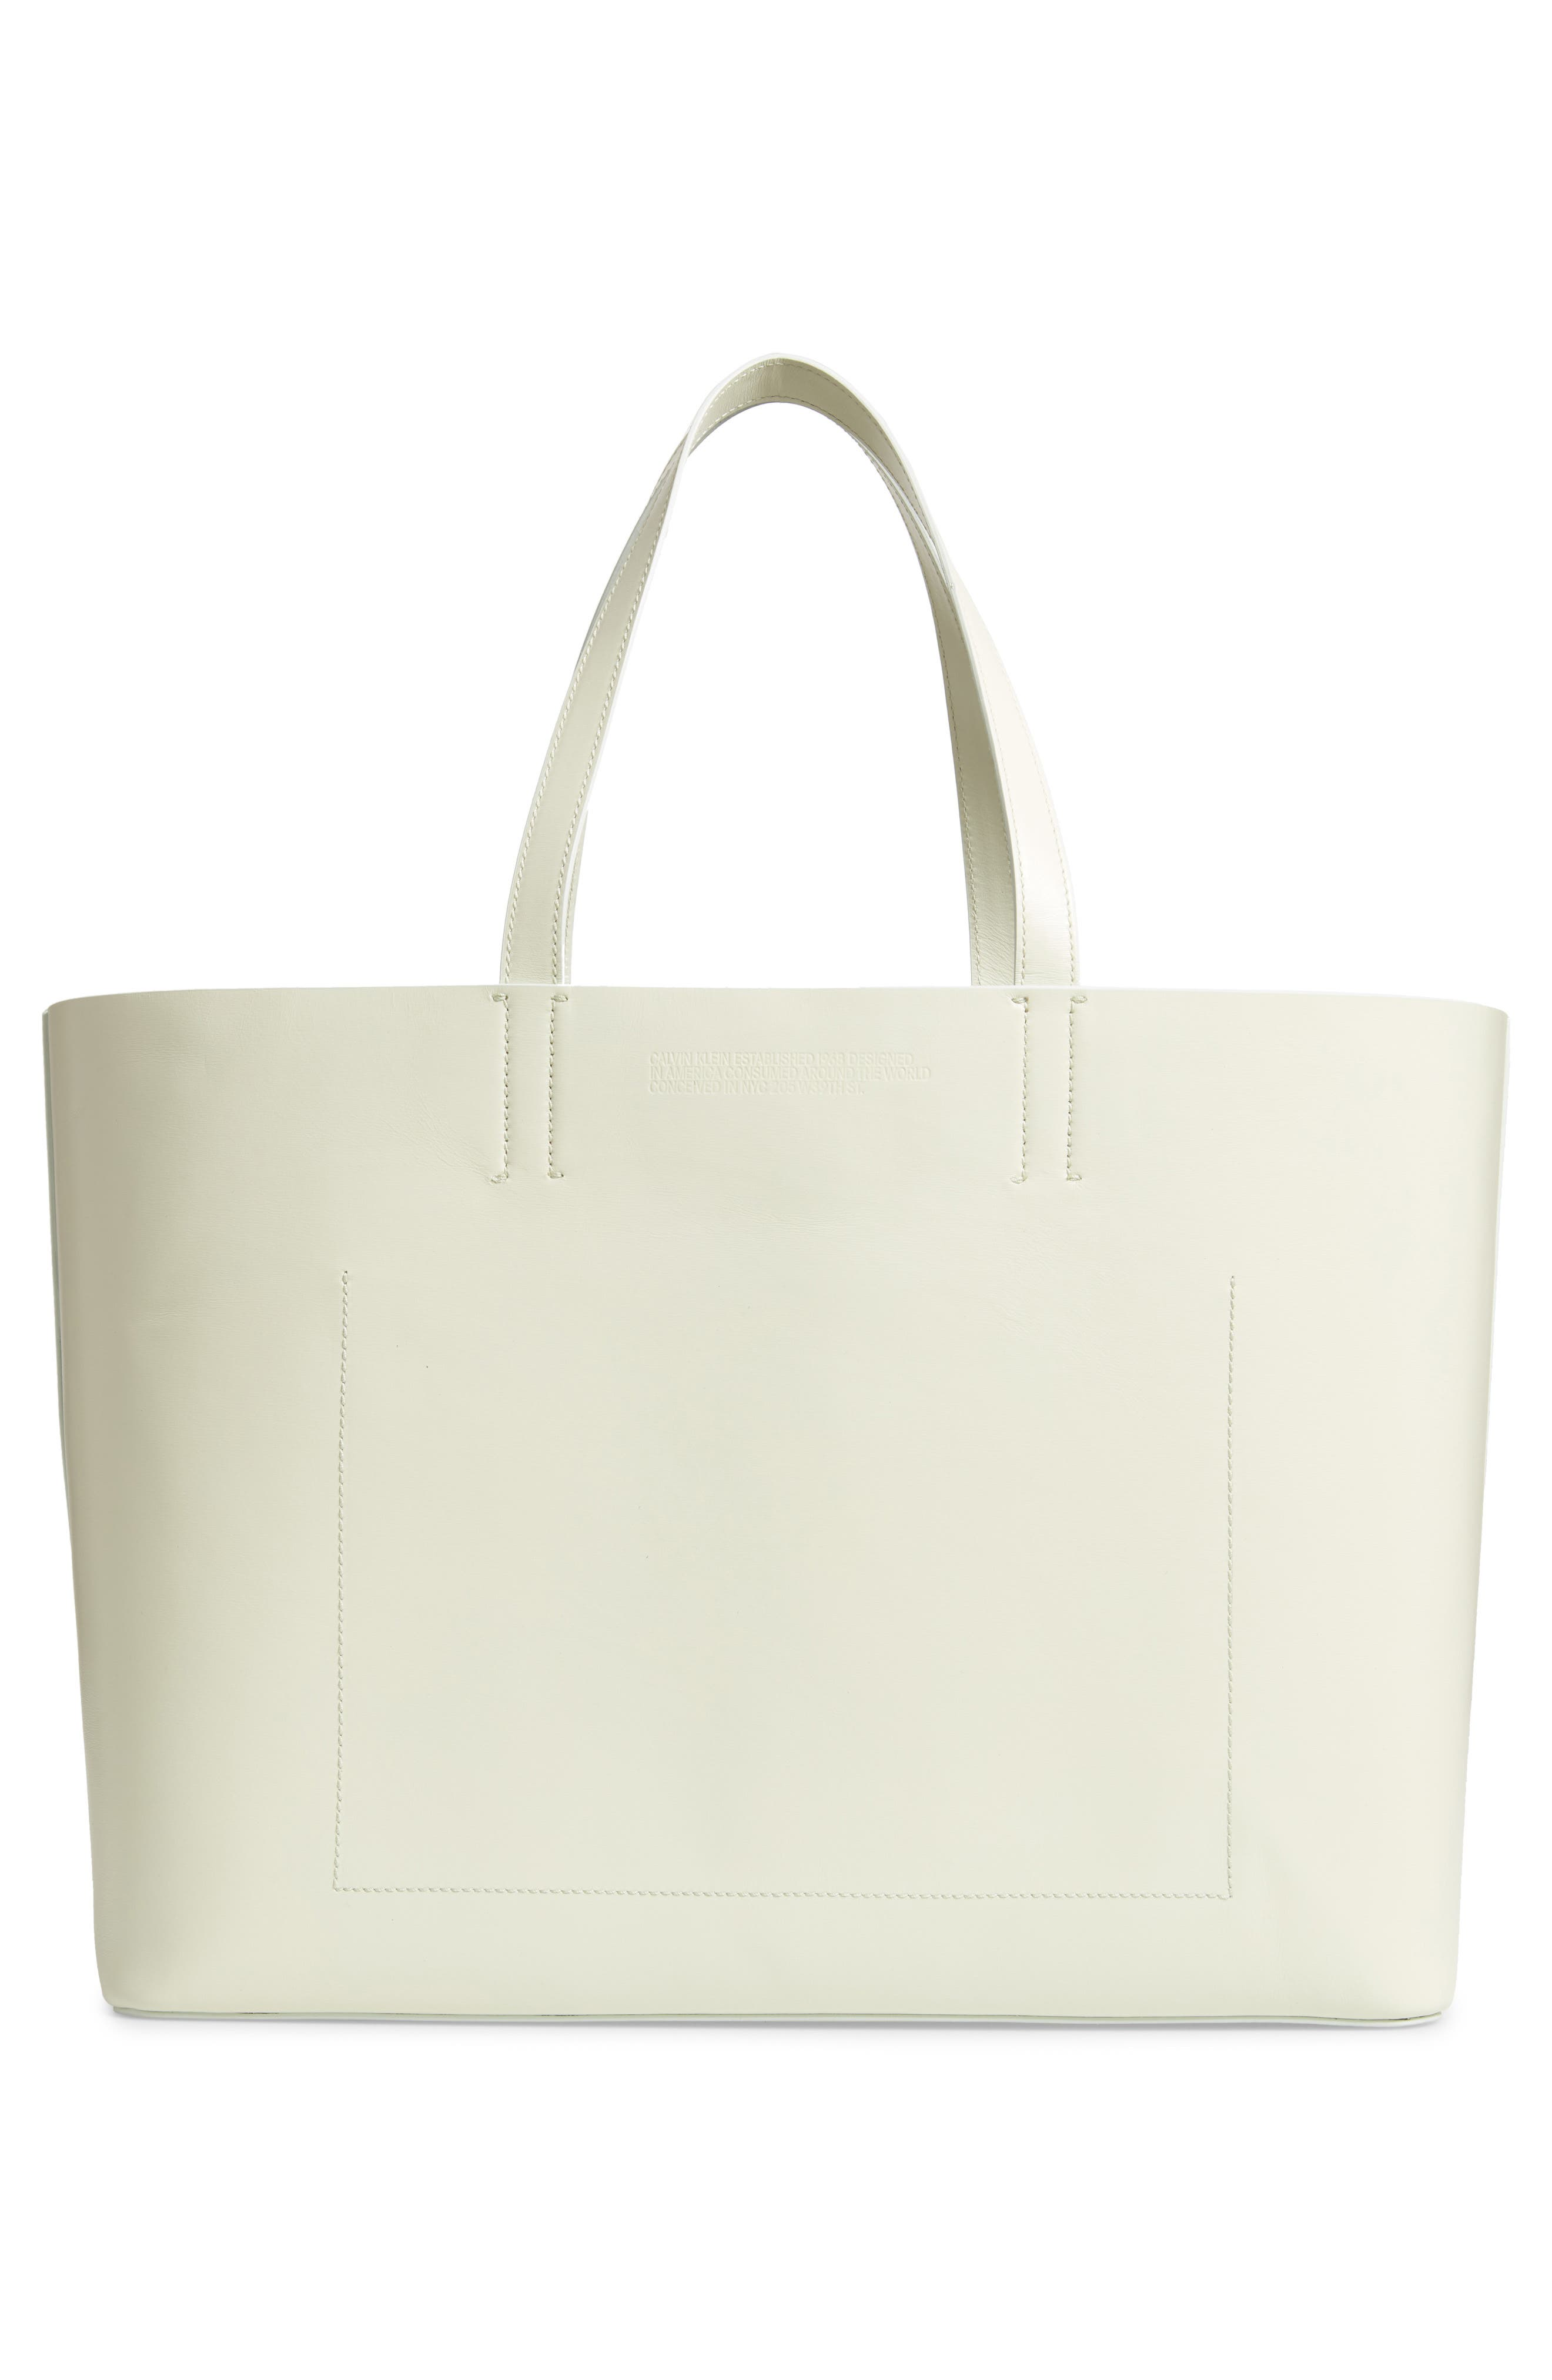 Road Runner East/West Leather Tote,                             Alternate thumbnail 3, color,                             MIST